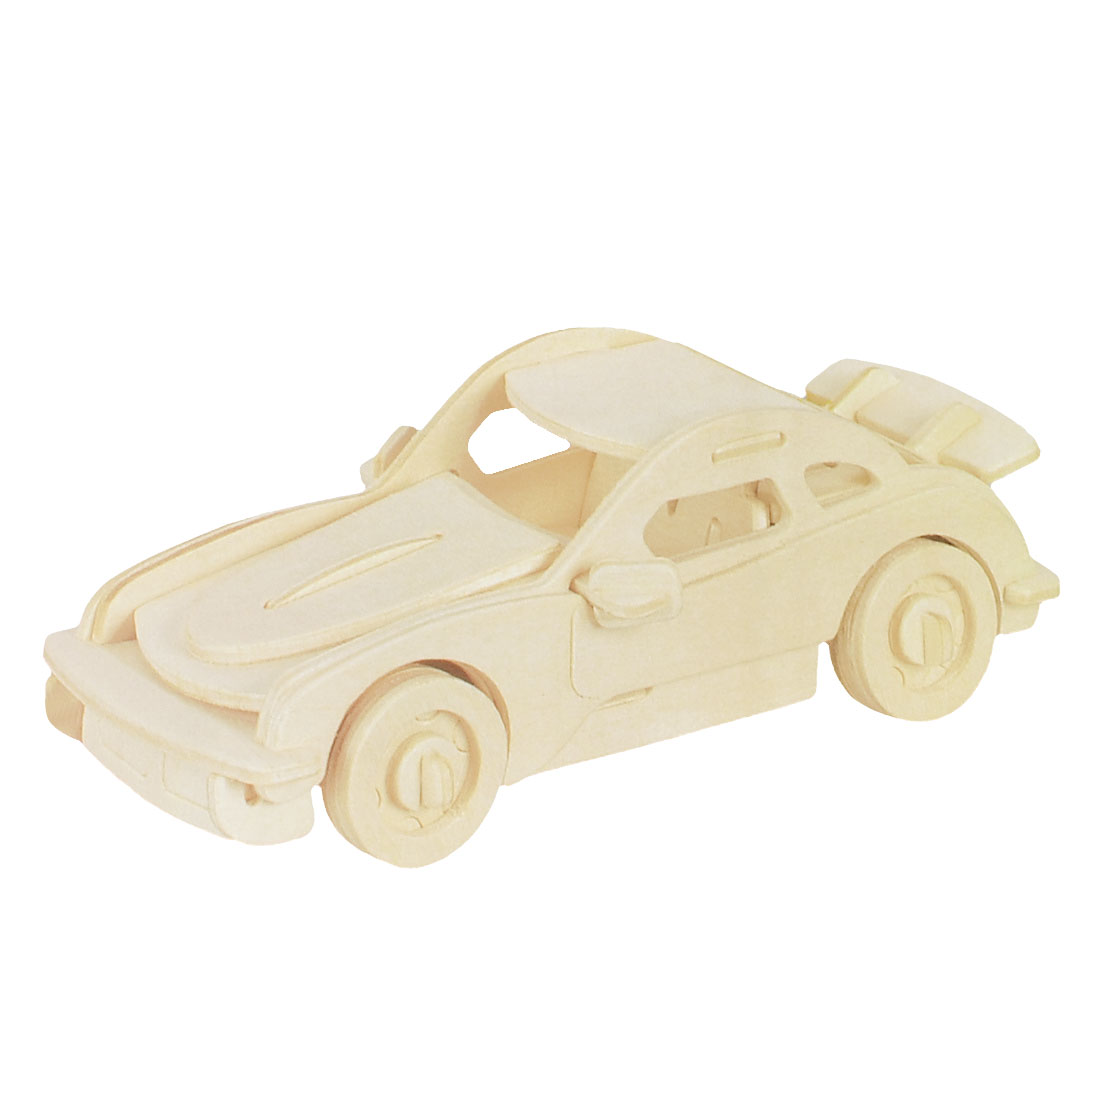 Children 3D Wooden Car Model Woodcraft Construction Kit Intelligence Puzzle Toy